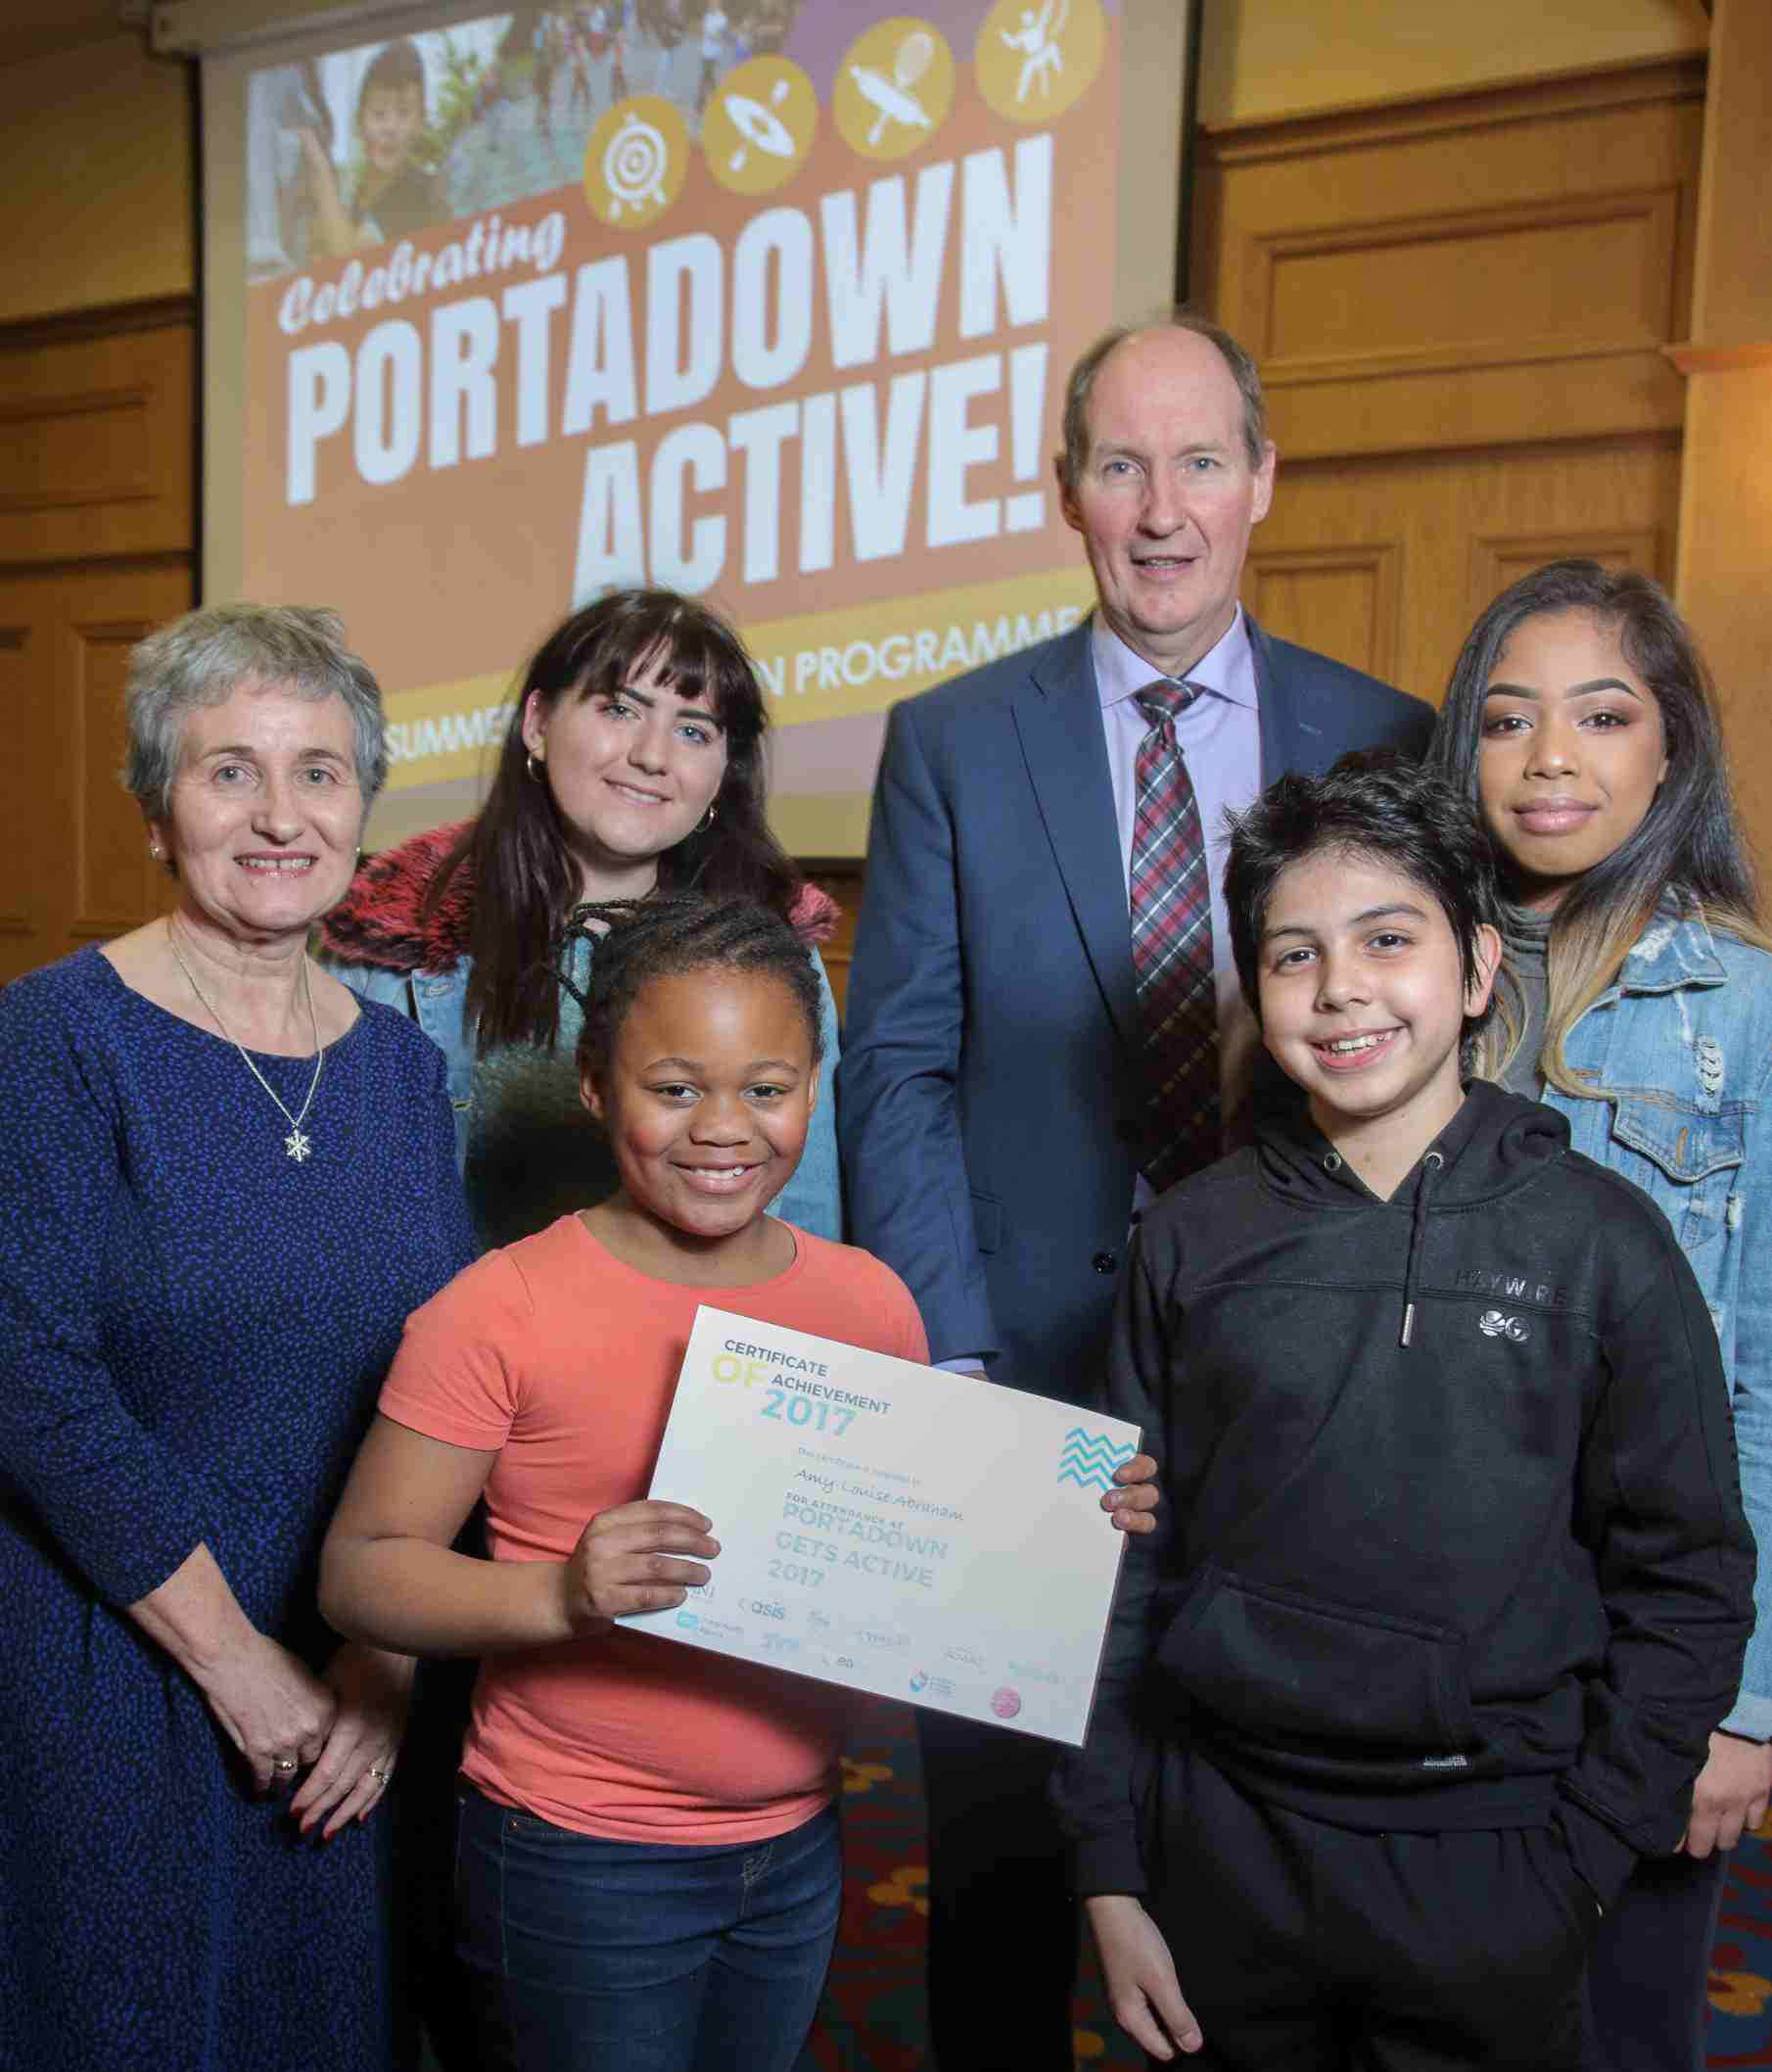 Young people presented with accredited awards at celebration event